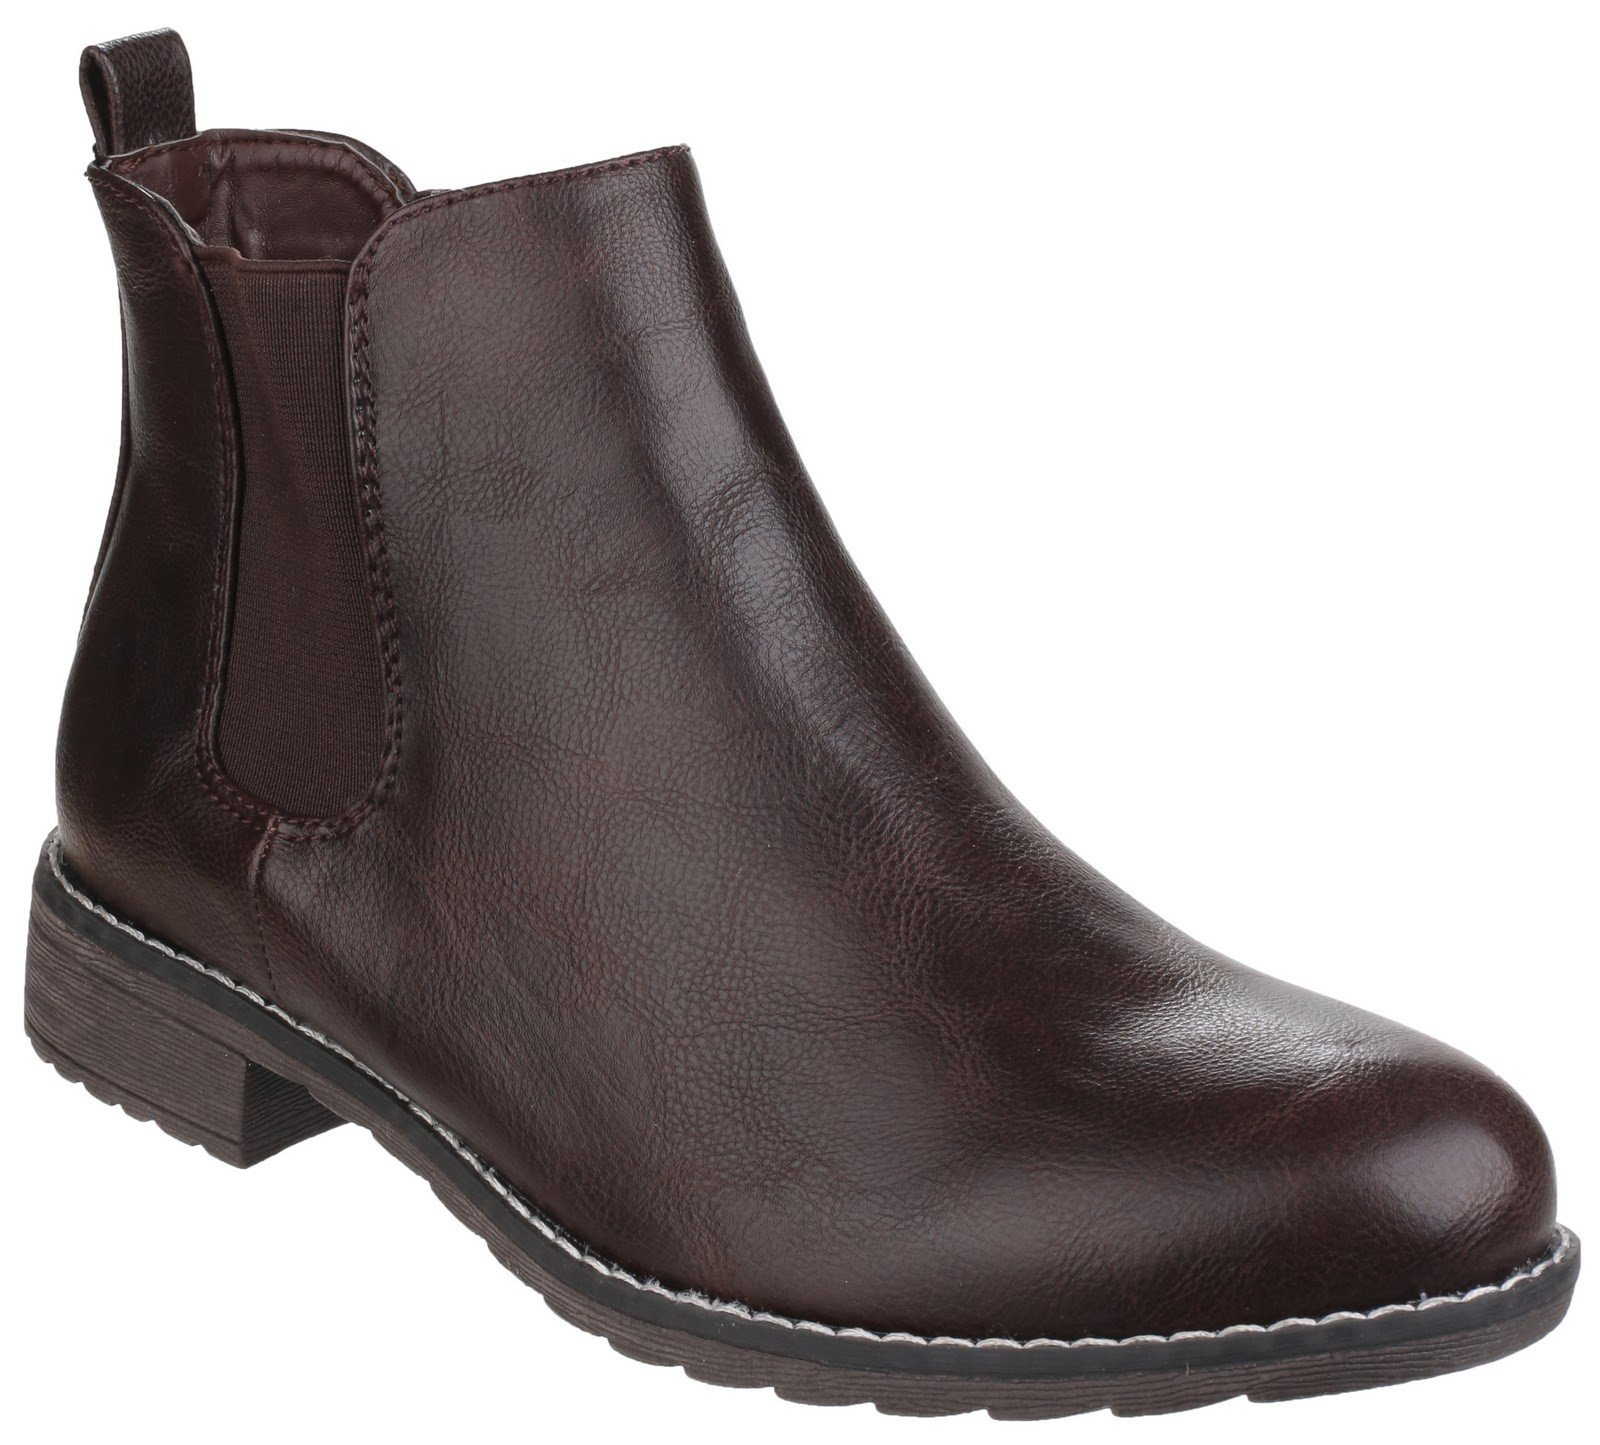 Divaz Women's Kelly Pull on Ankle Boot Black 24272-40022 - Brown 8